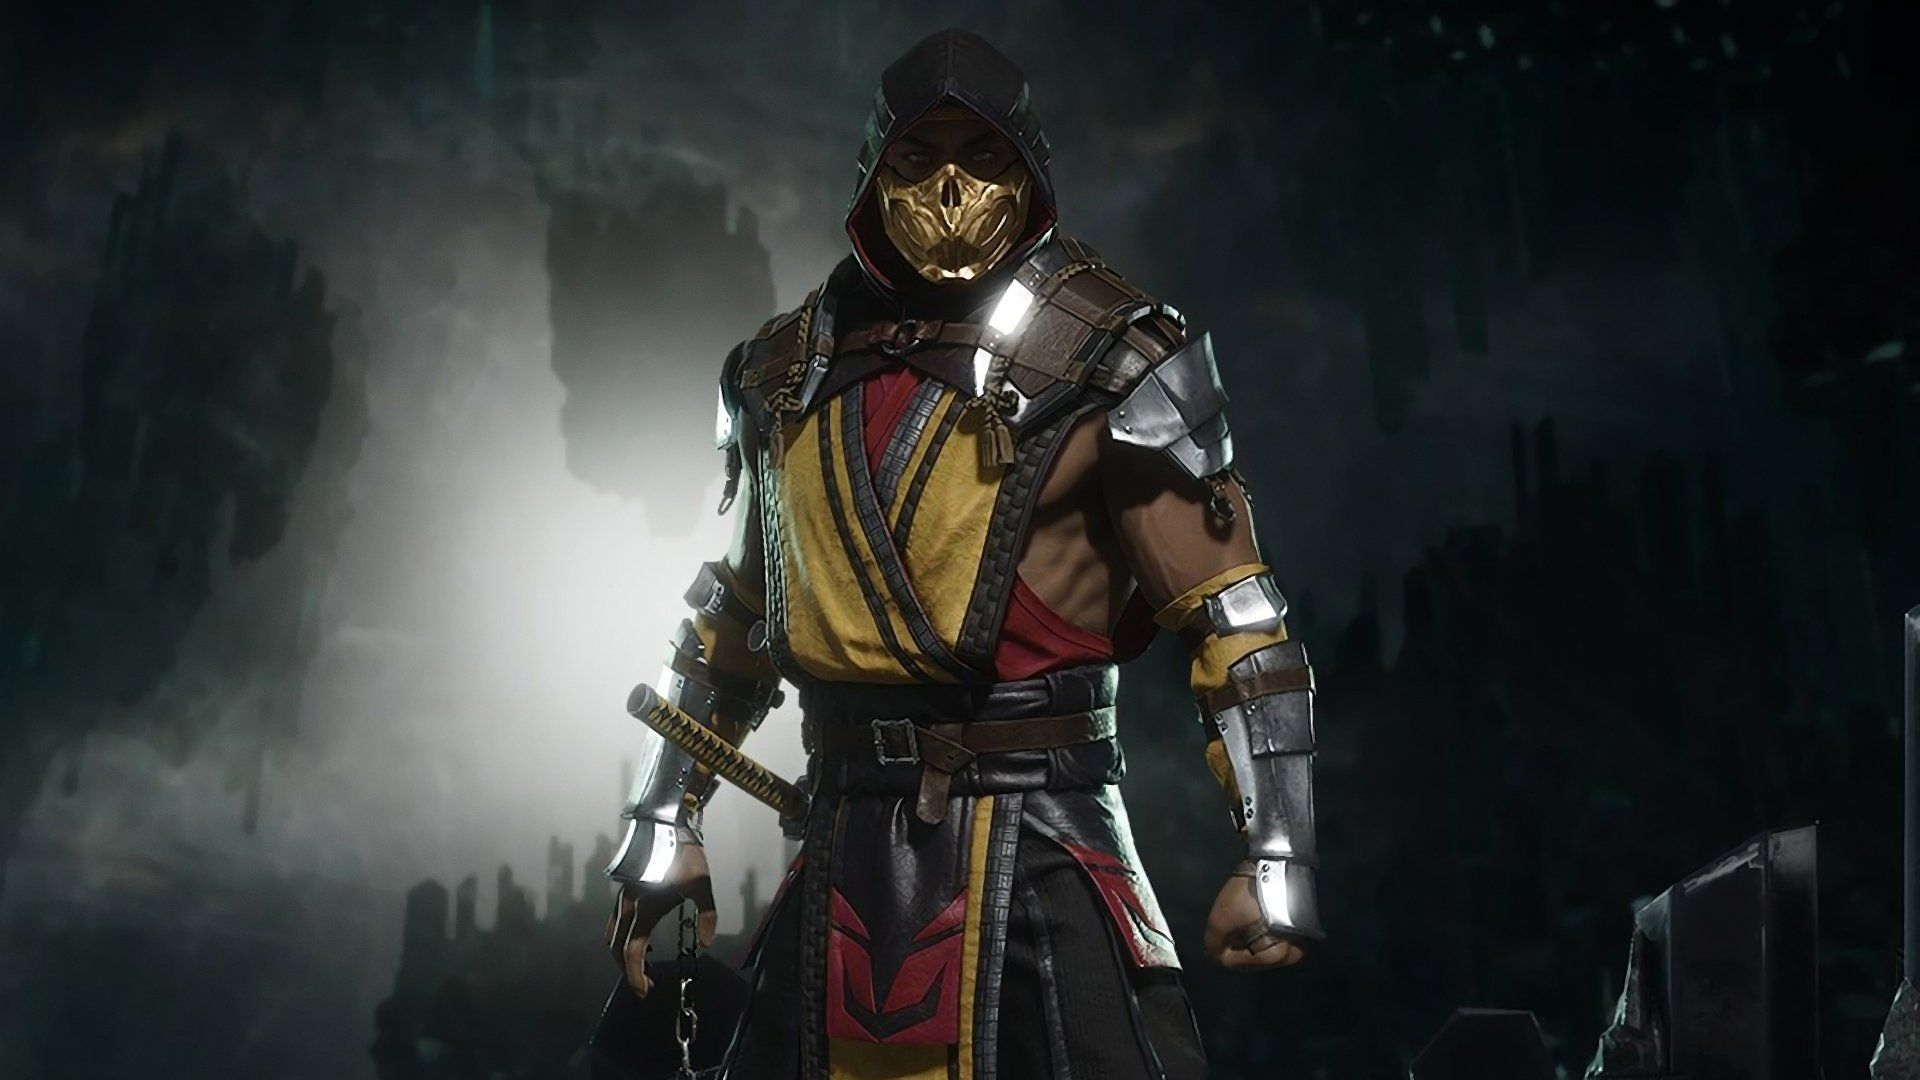 Mortal Kombat 11 Desktop Wallpapers Top Free Mortal Kombat 11